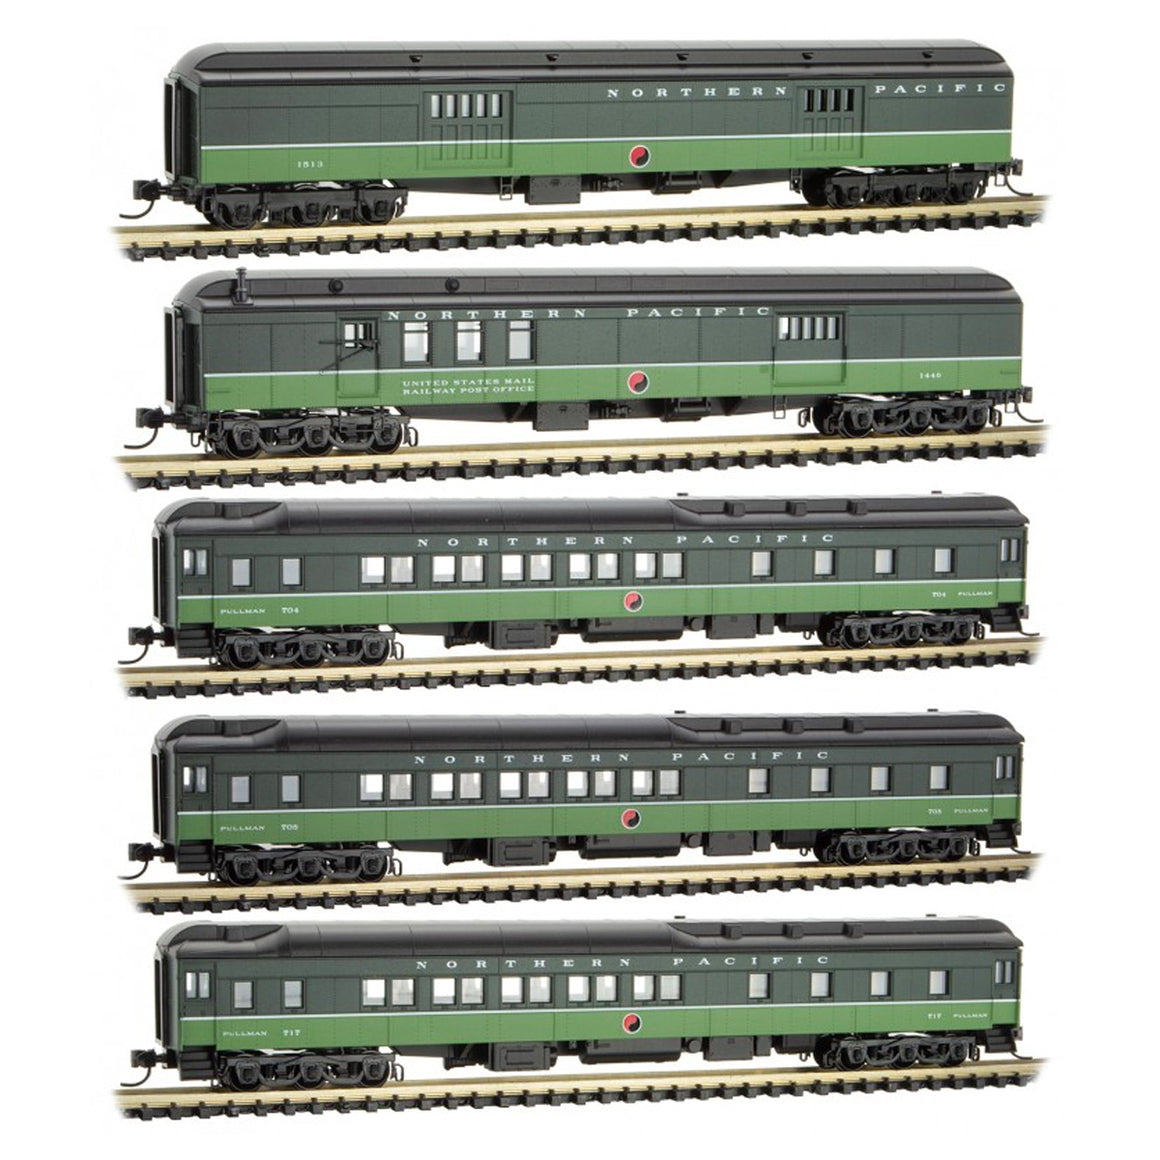 N Scale: Heavyweight Passenger Cars - Northern Pacific - 5 Pack